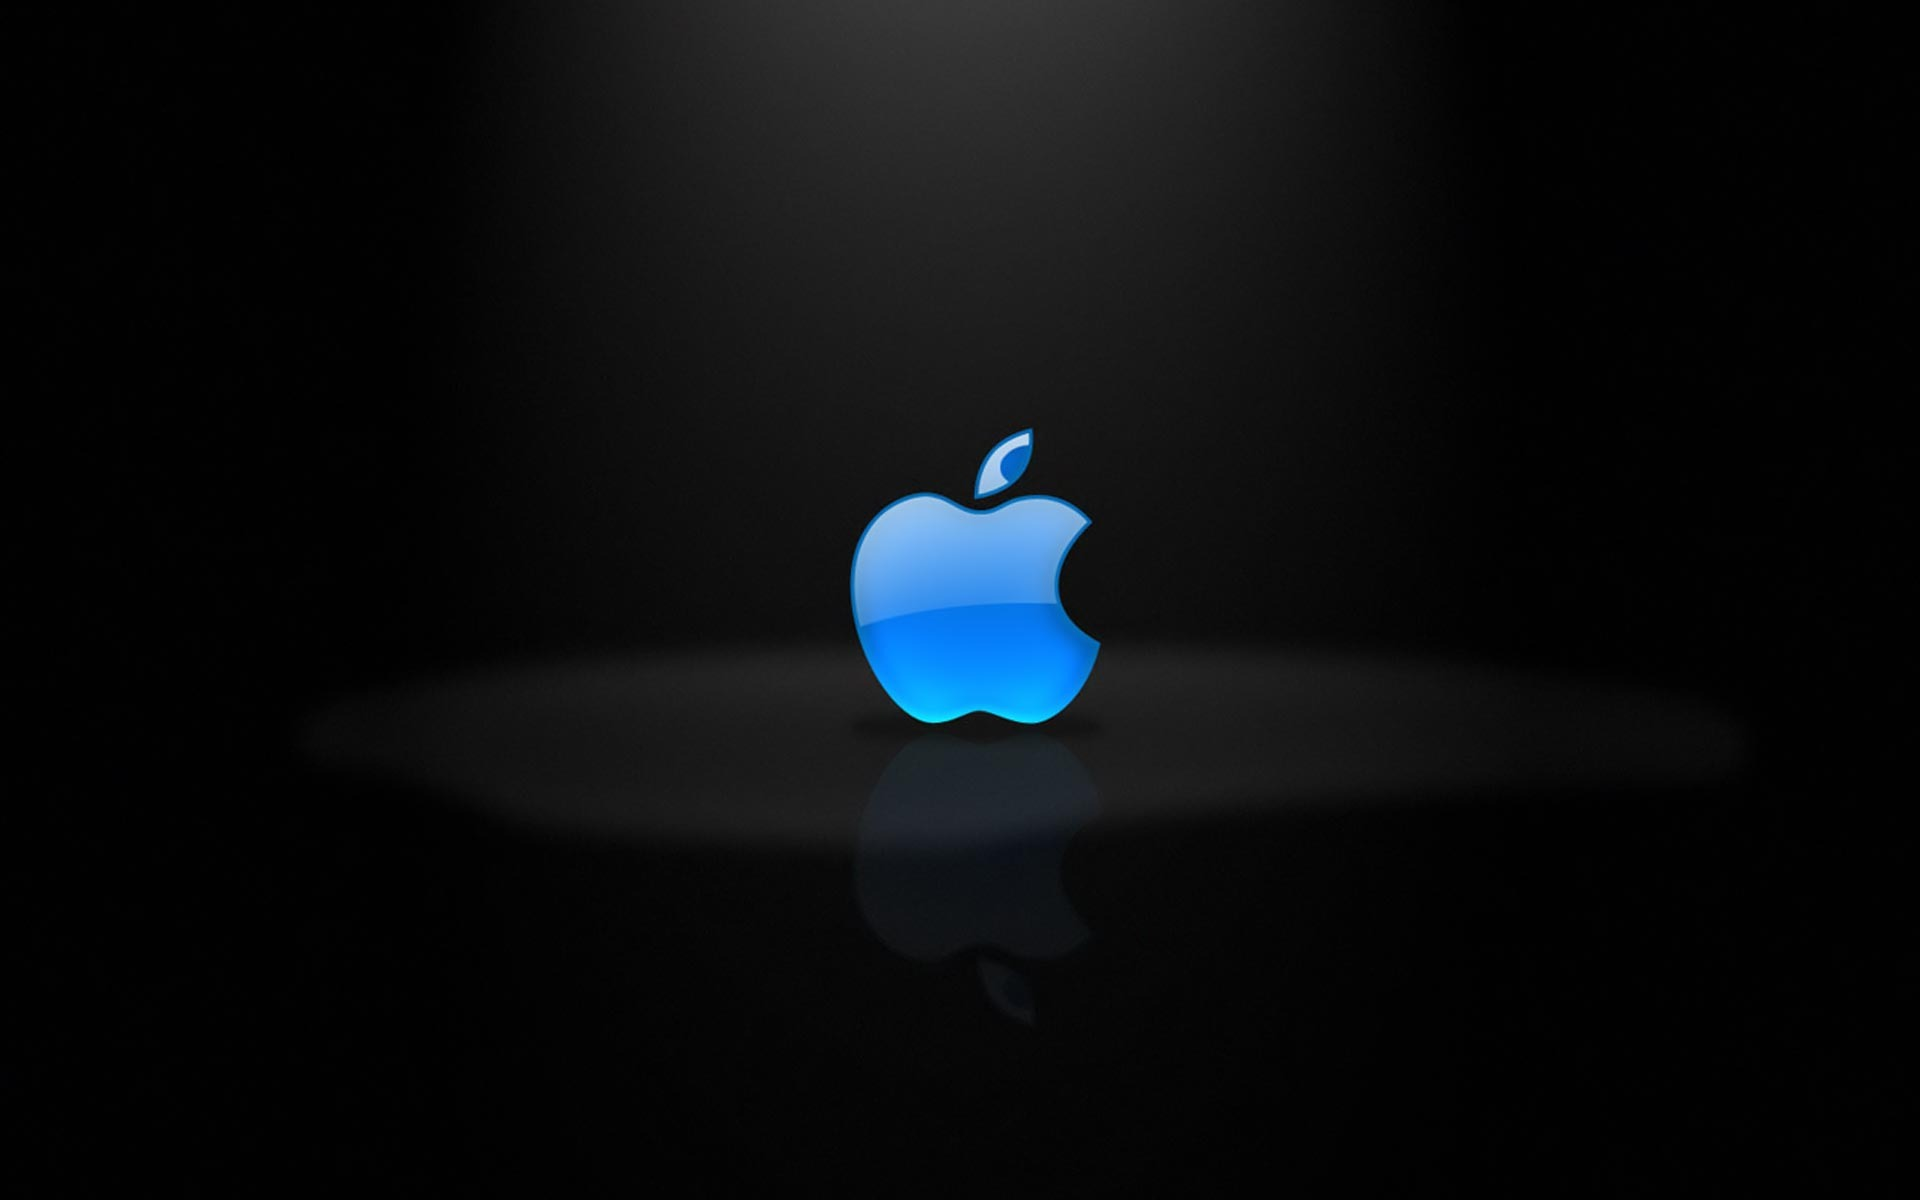 Blue Apple logo wallpaper 522 1920x1200